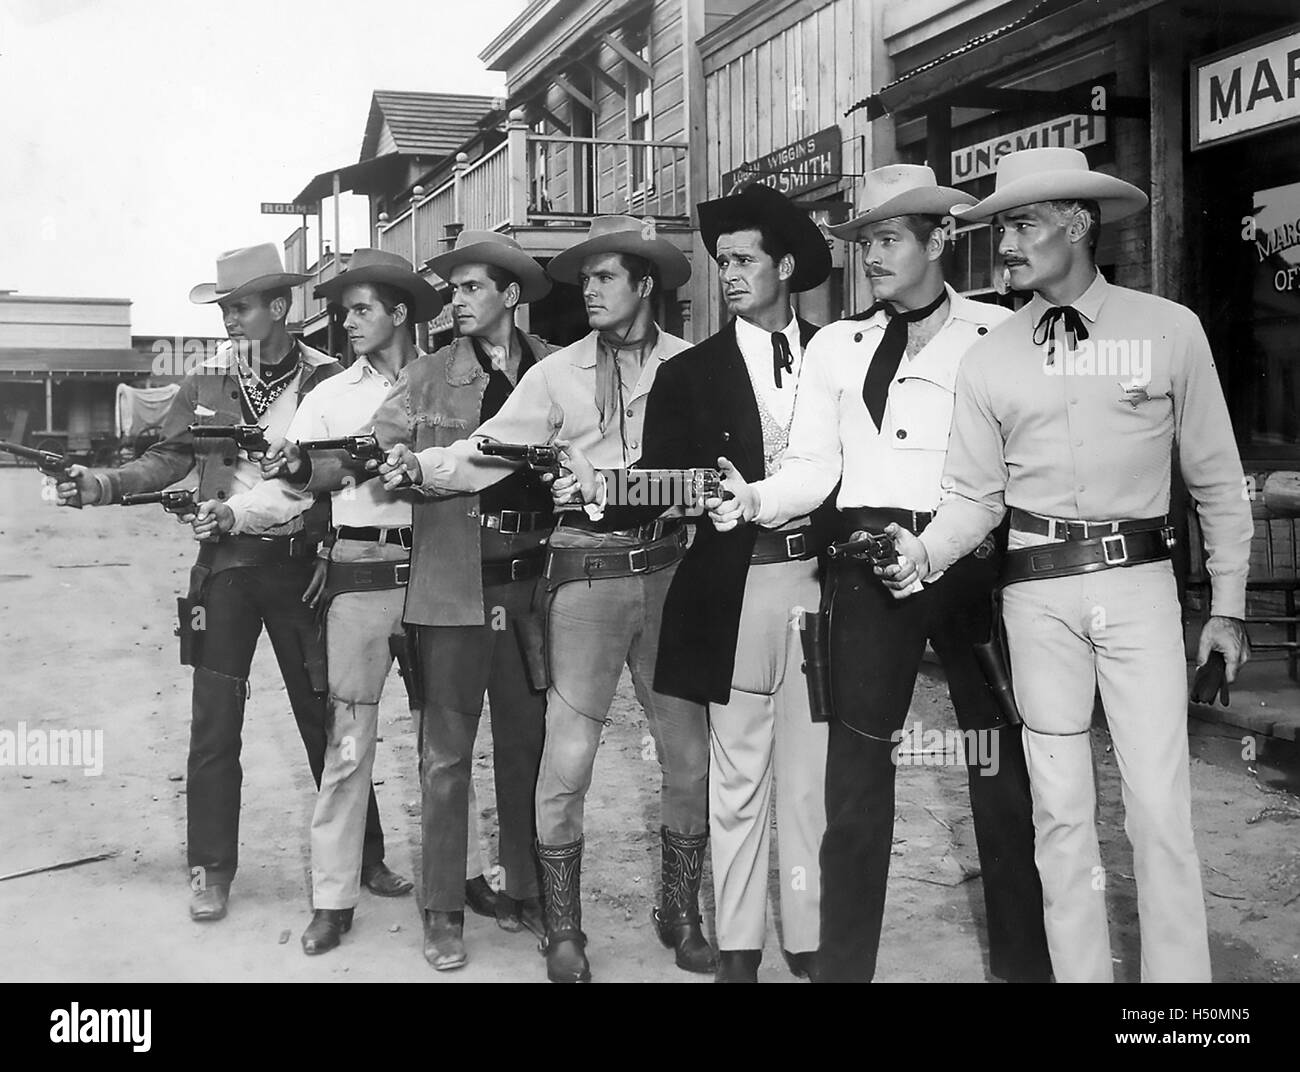 WARNER BROS TV WESTERN STARS 1959. From left: Will Hutchins (Sugarfoot) , Peter Brown (Lawman), Jack Kelly (Maverick), - Stock Image